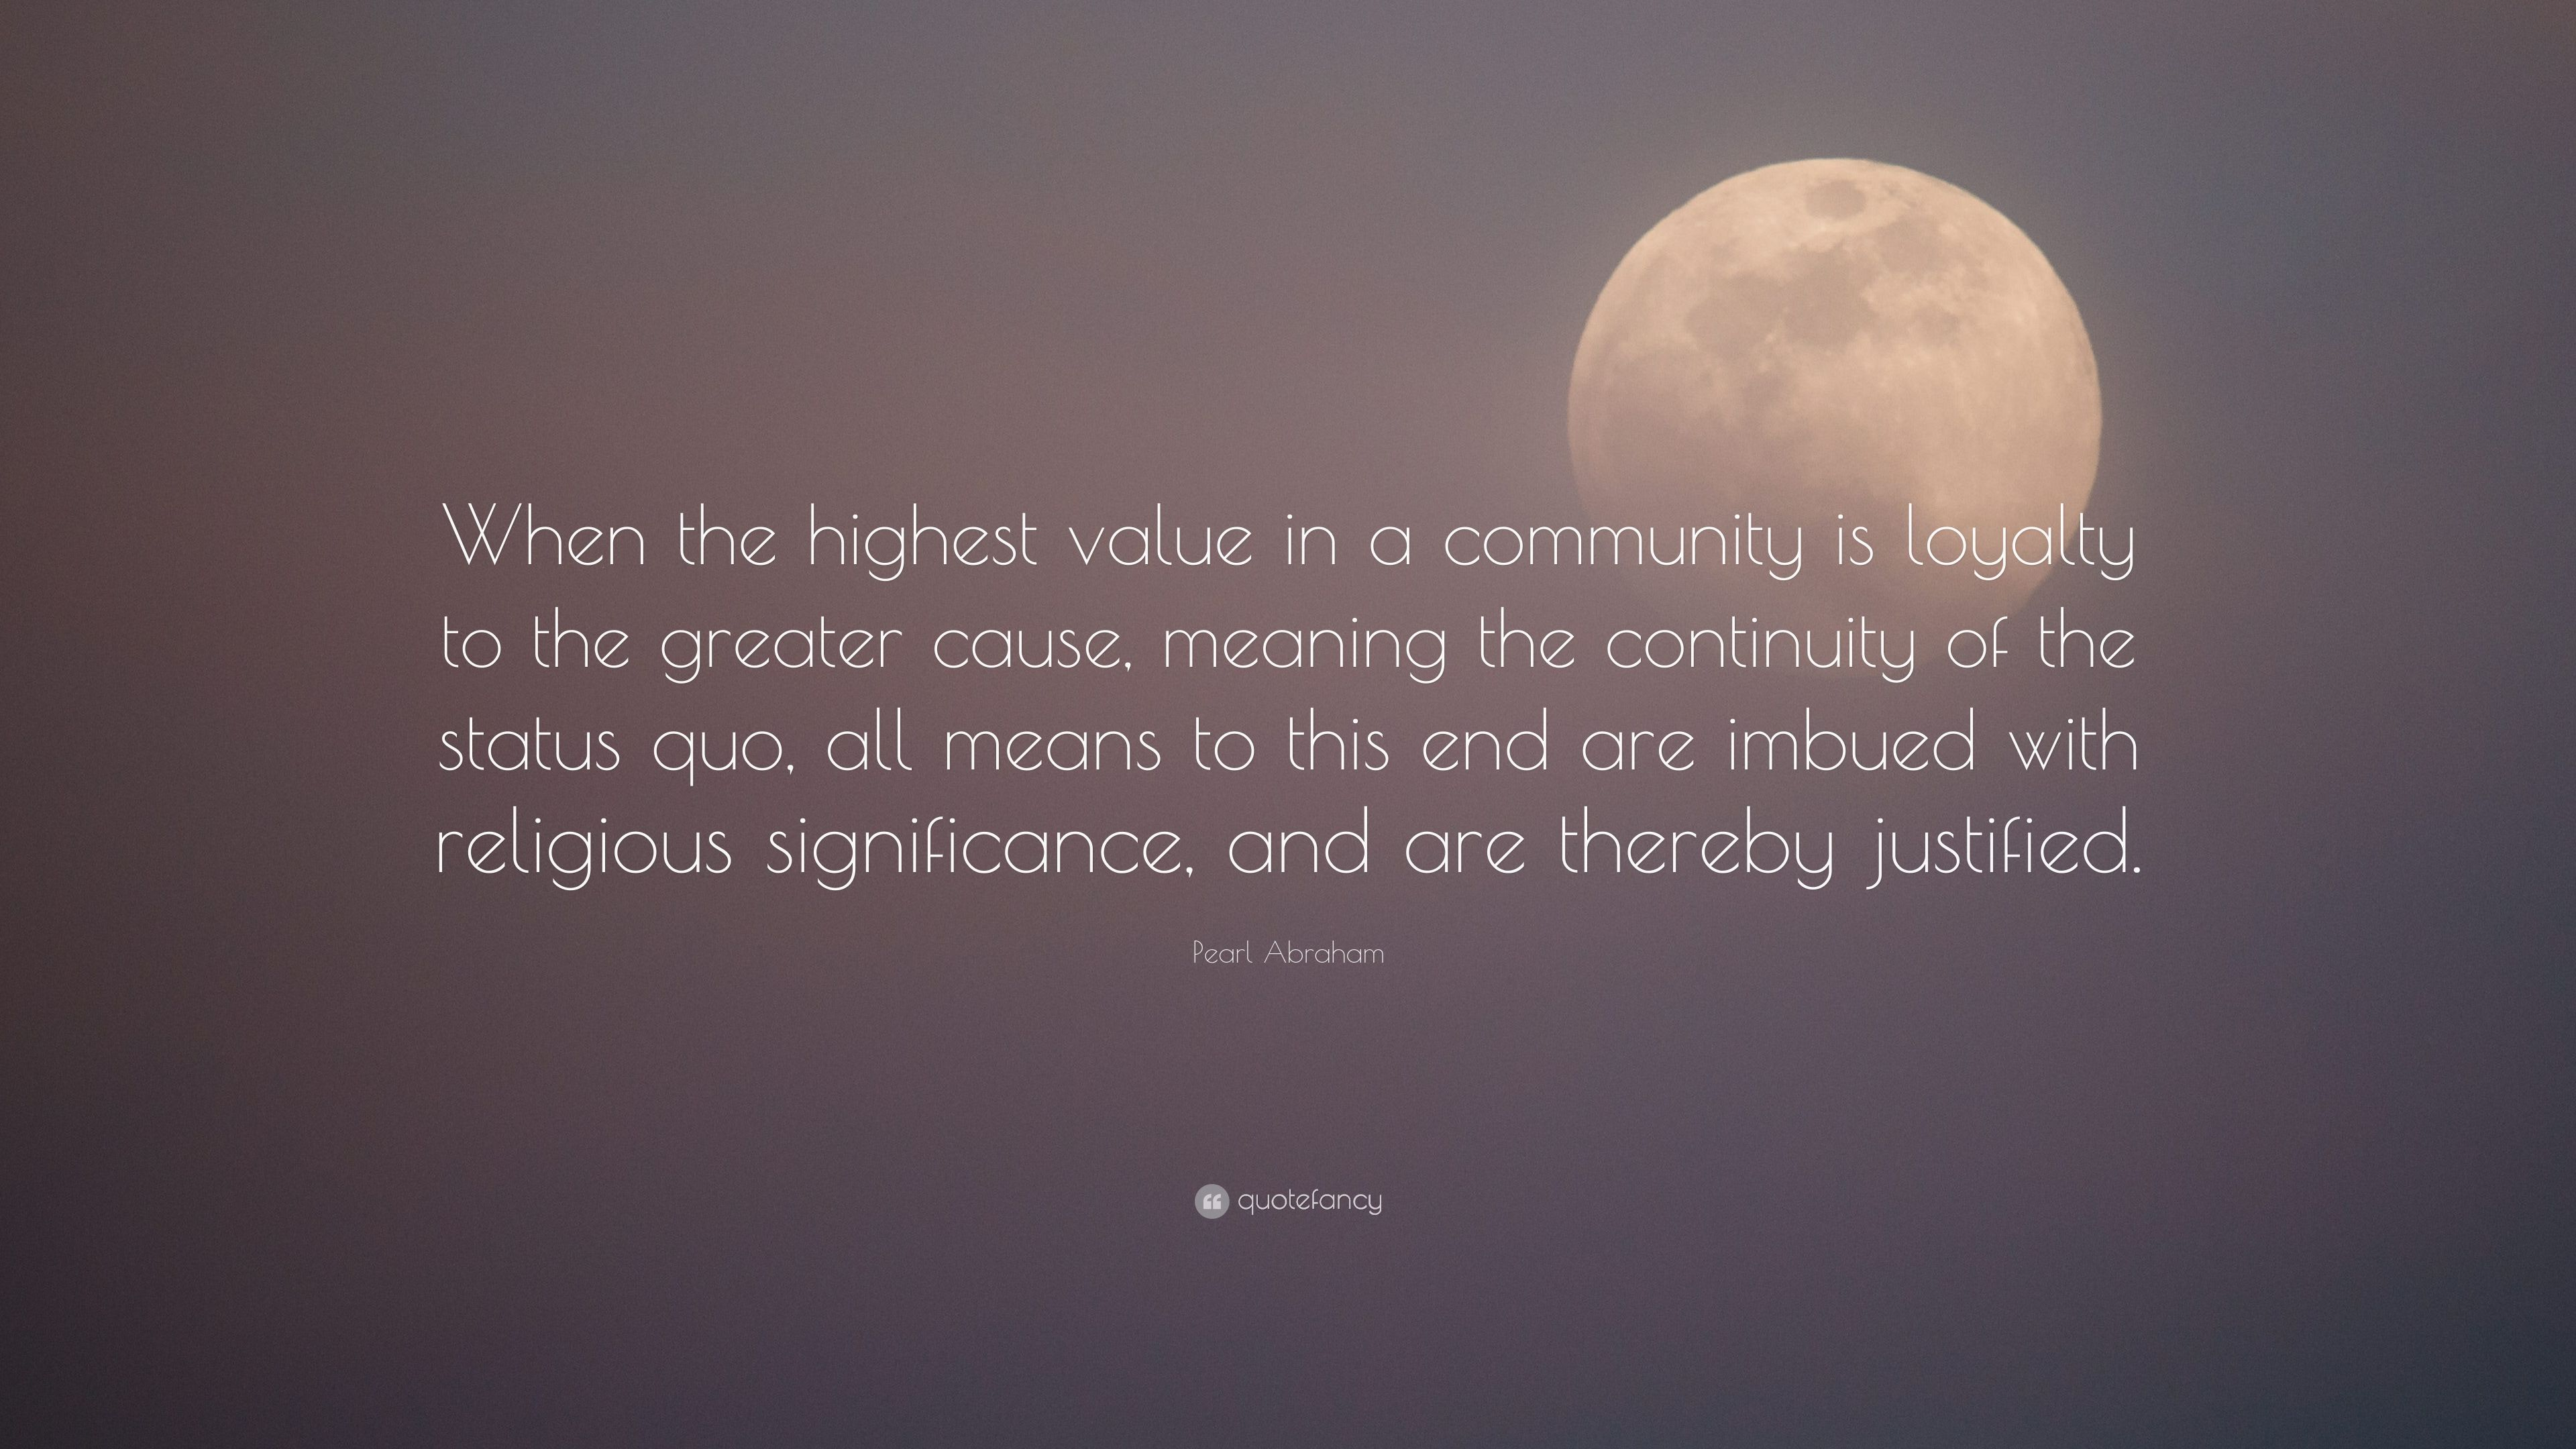 """Pearl Abraham Quote: """"When the highest value in a community"""